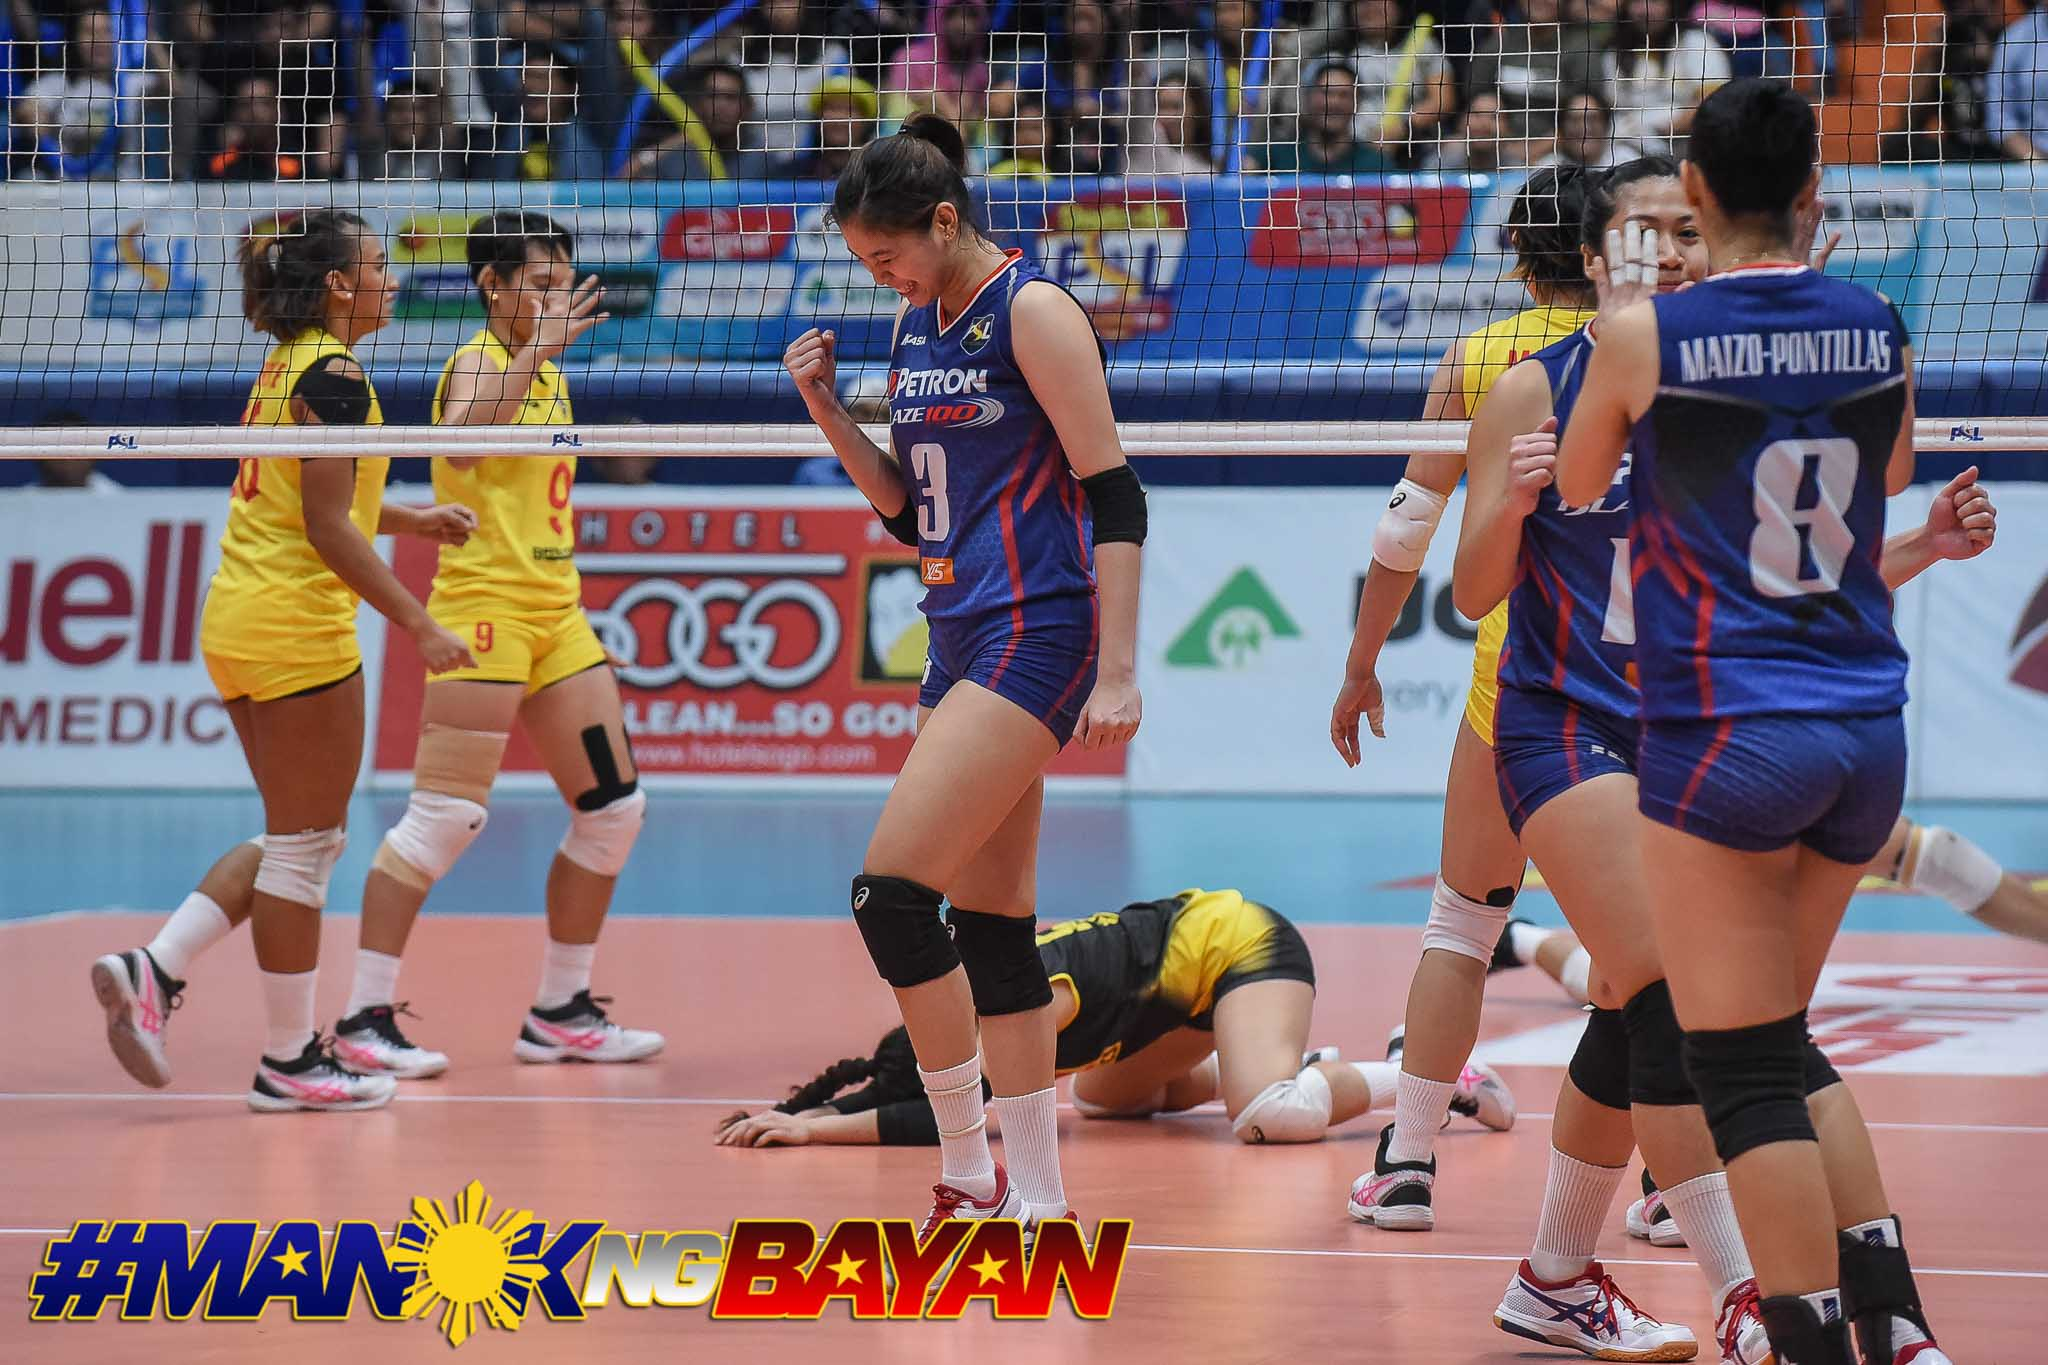 PSL-AFC-Finals-G3-F2-vs.-Petron-Reyes-0317 Mika Reyes savors All-Filipino title defense News PSL Volleyball  - philippine sports news